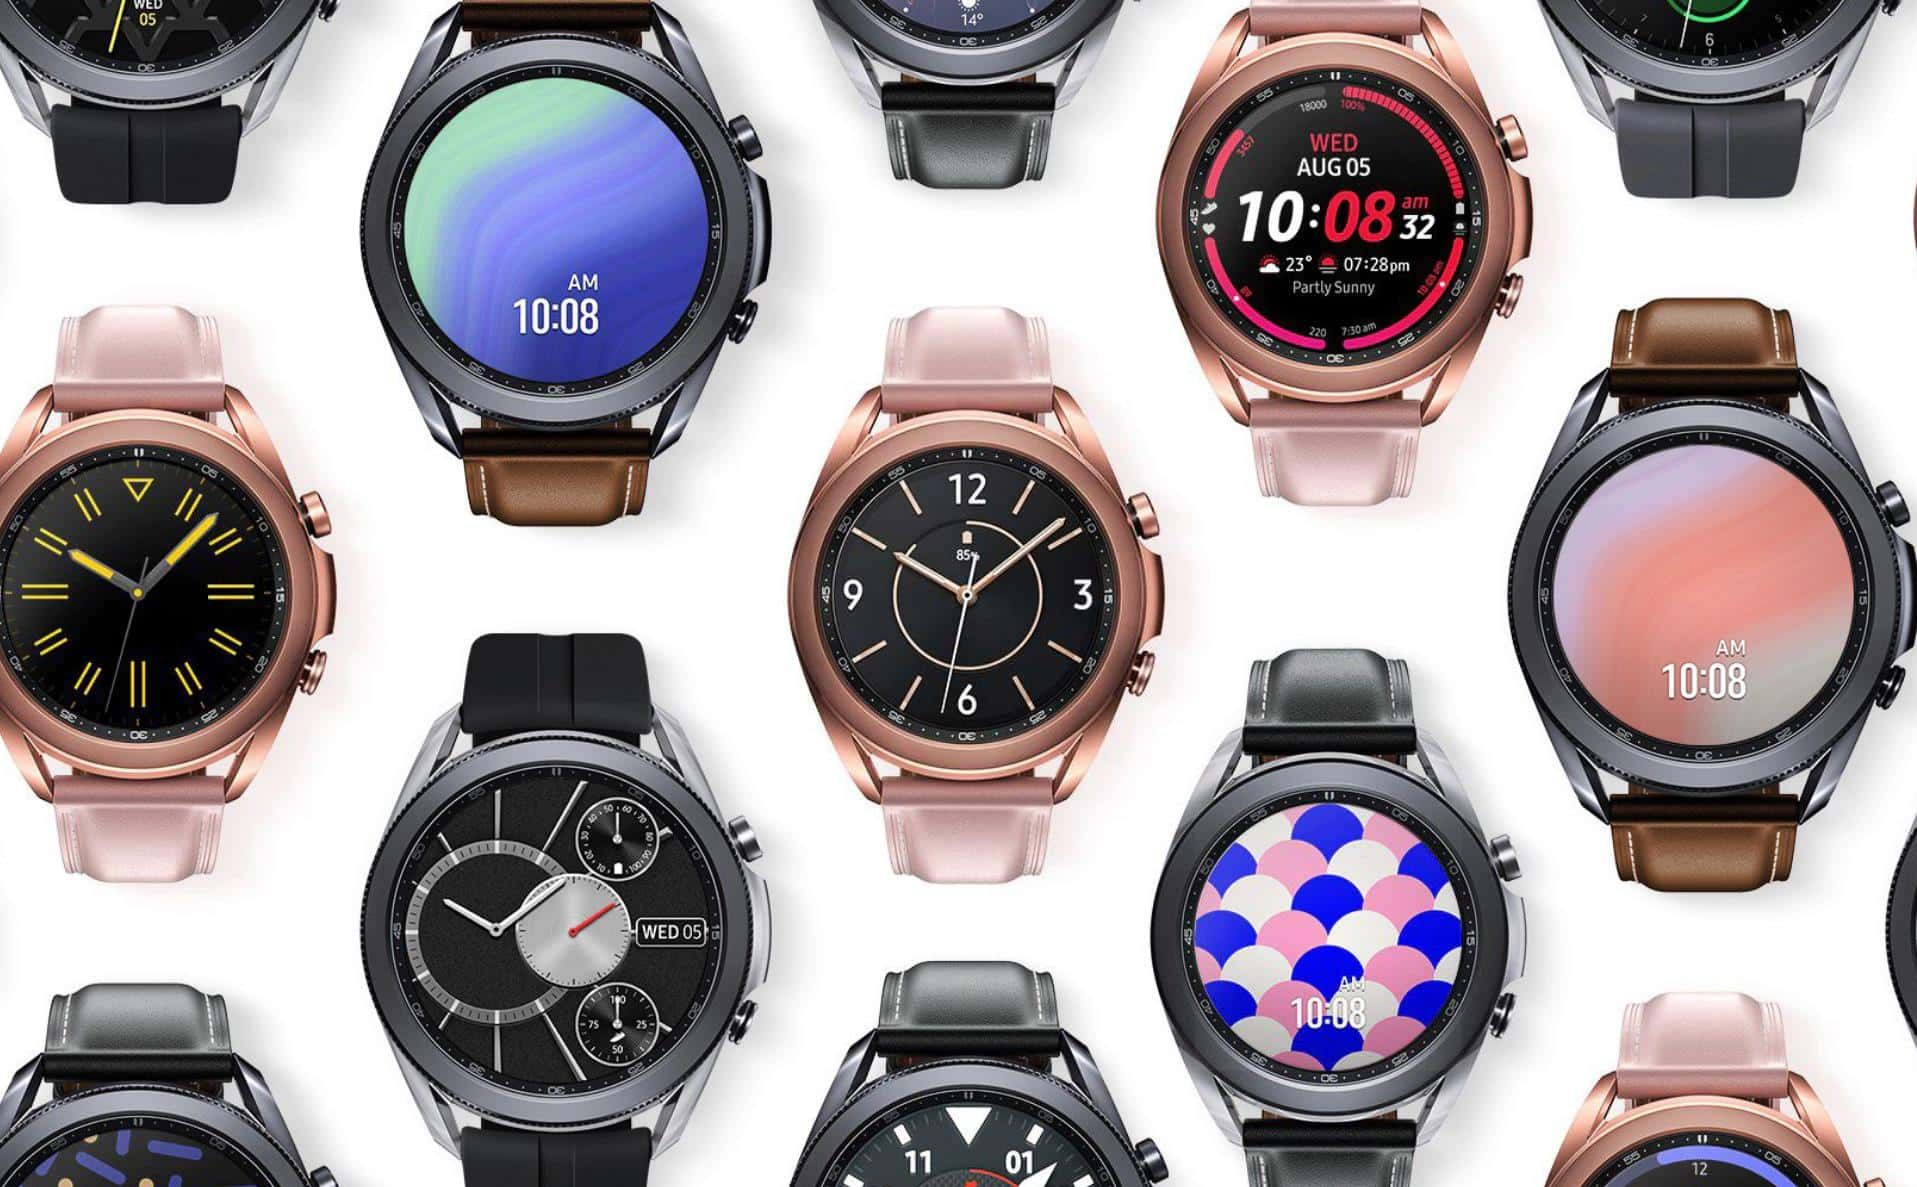 The smartwatch market has been relatively slow to take off. But demand for intelligent wearable devices has grown consistently year-on-year and is now... -   #SmartWatches #Wearables